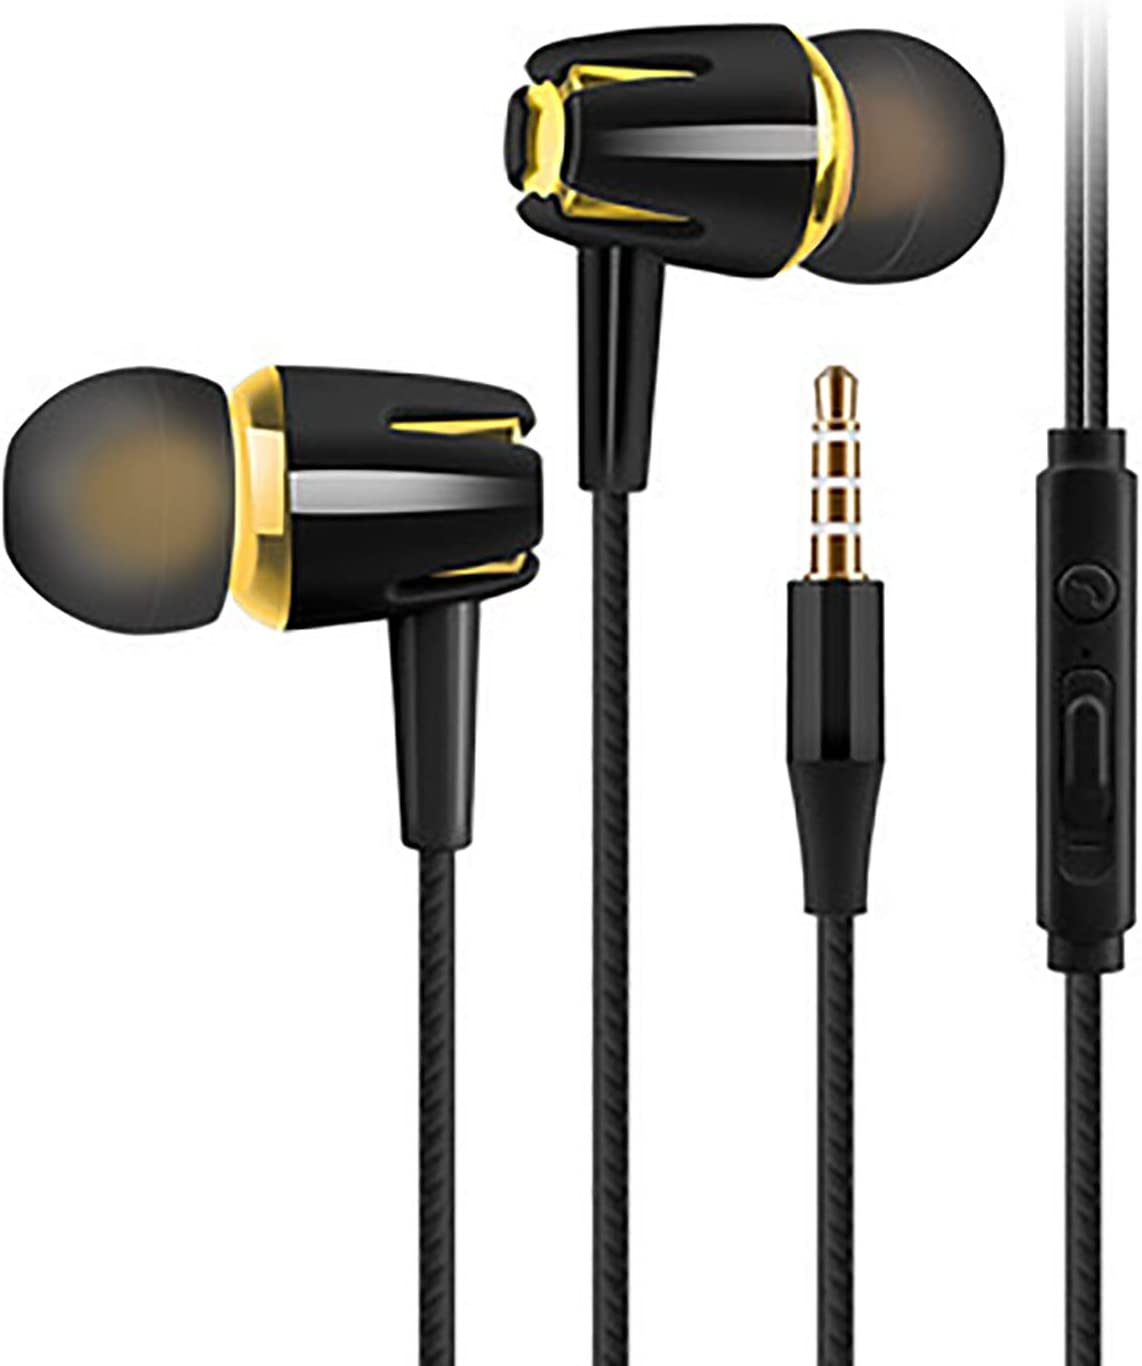 LUYANhapy9 Wired Earphones,Comfortable Noise Reduction Earbuds Stereo Lightweight Fits All 3.5mm Interface Device in-Ear Wired Earbuds for Sports Black & Gold One Size